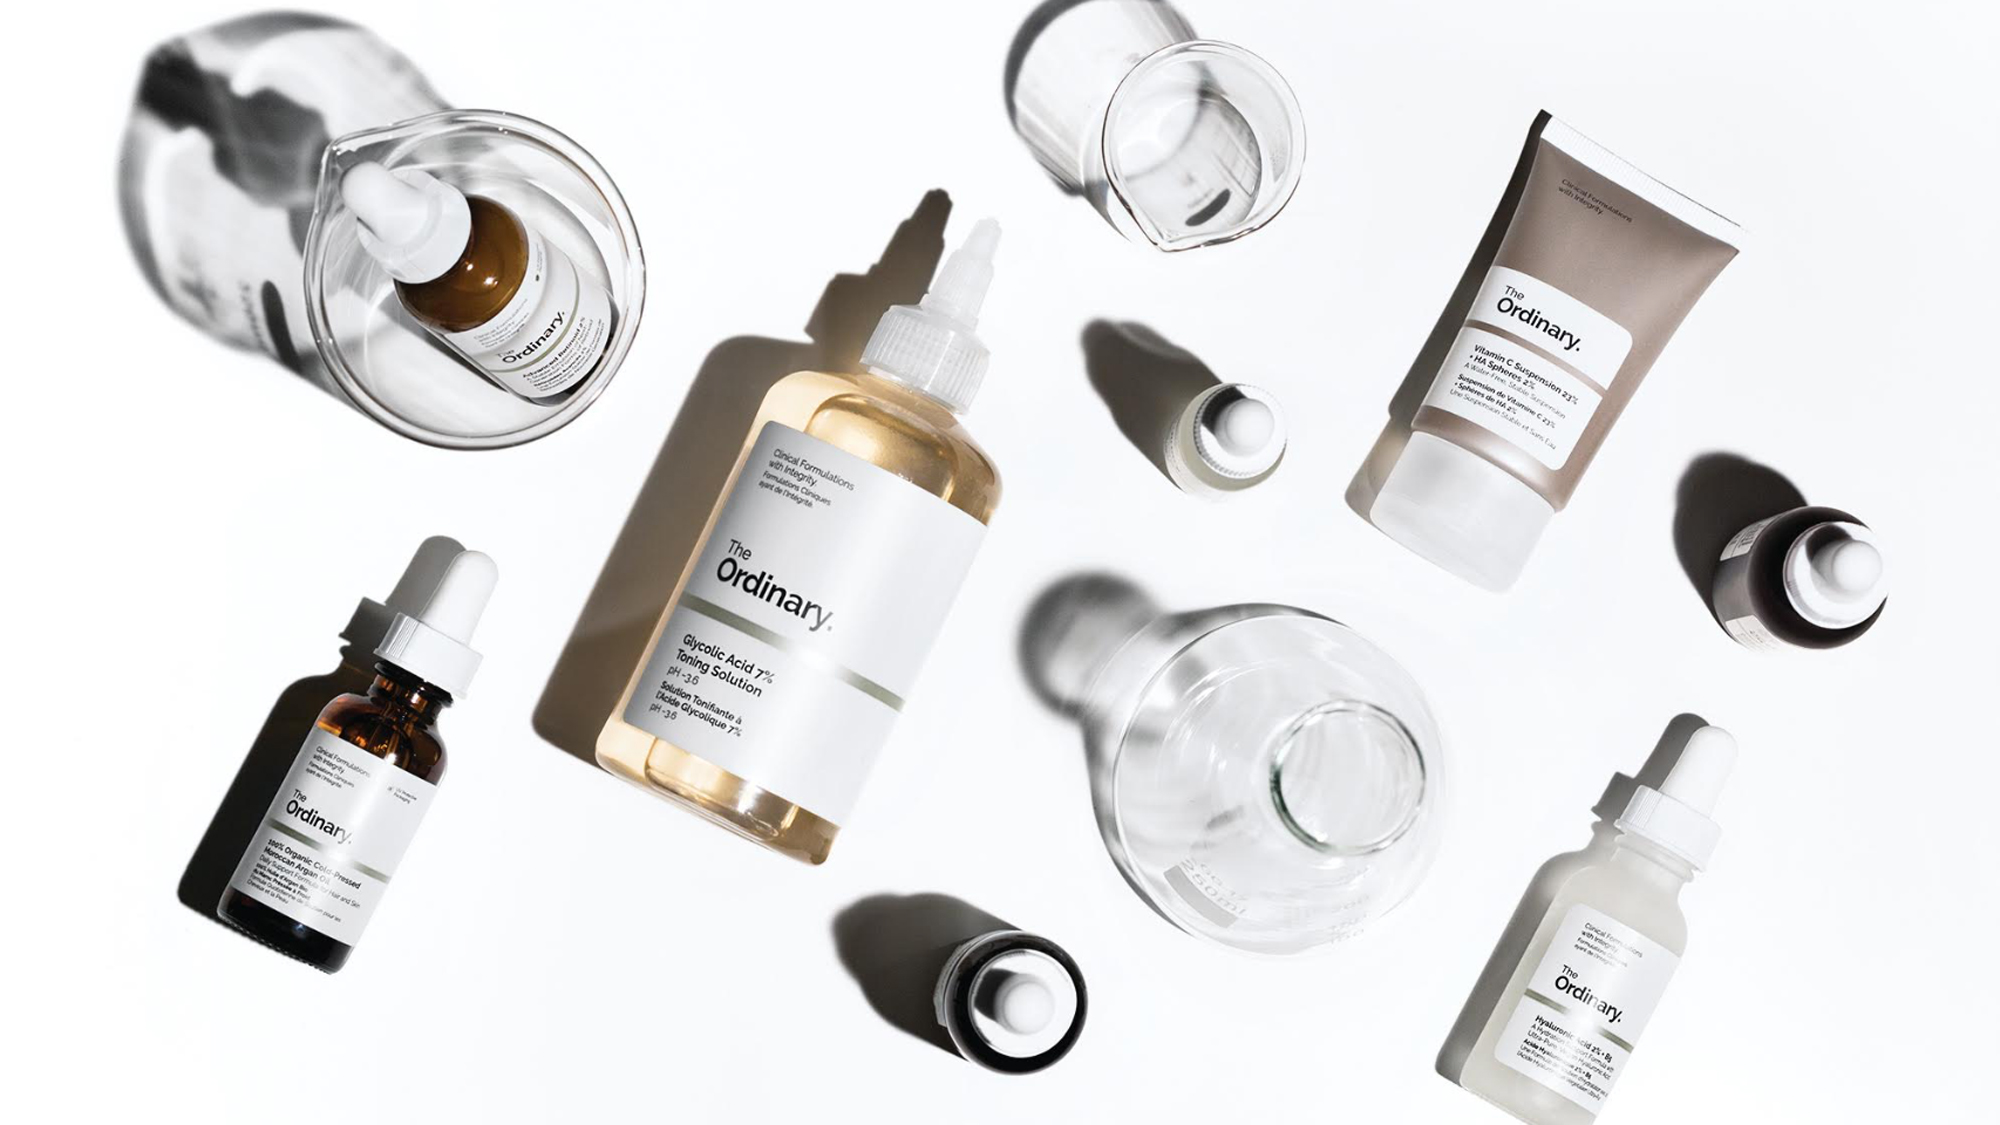 The Ordinary is launching into Boots and fans couldn't be more excited